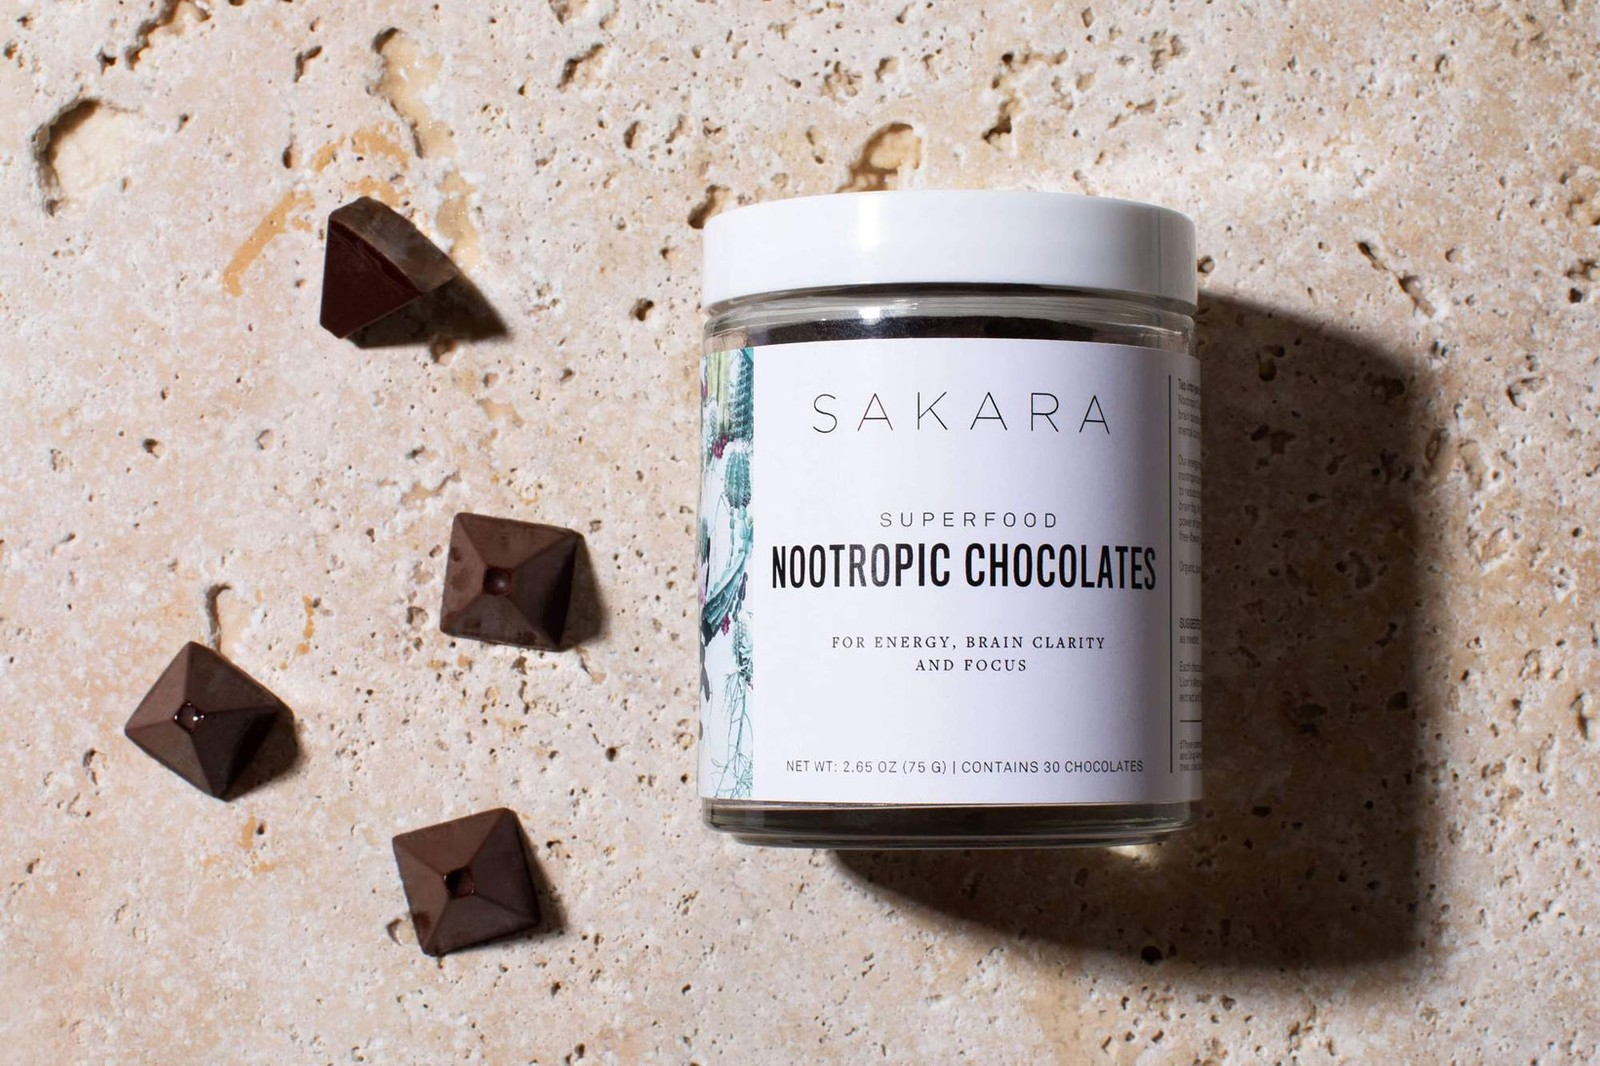 NOOTROPIC CHOCOLATES